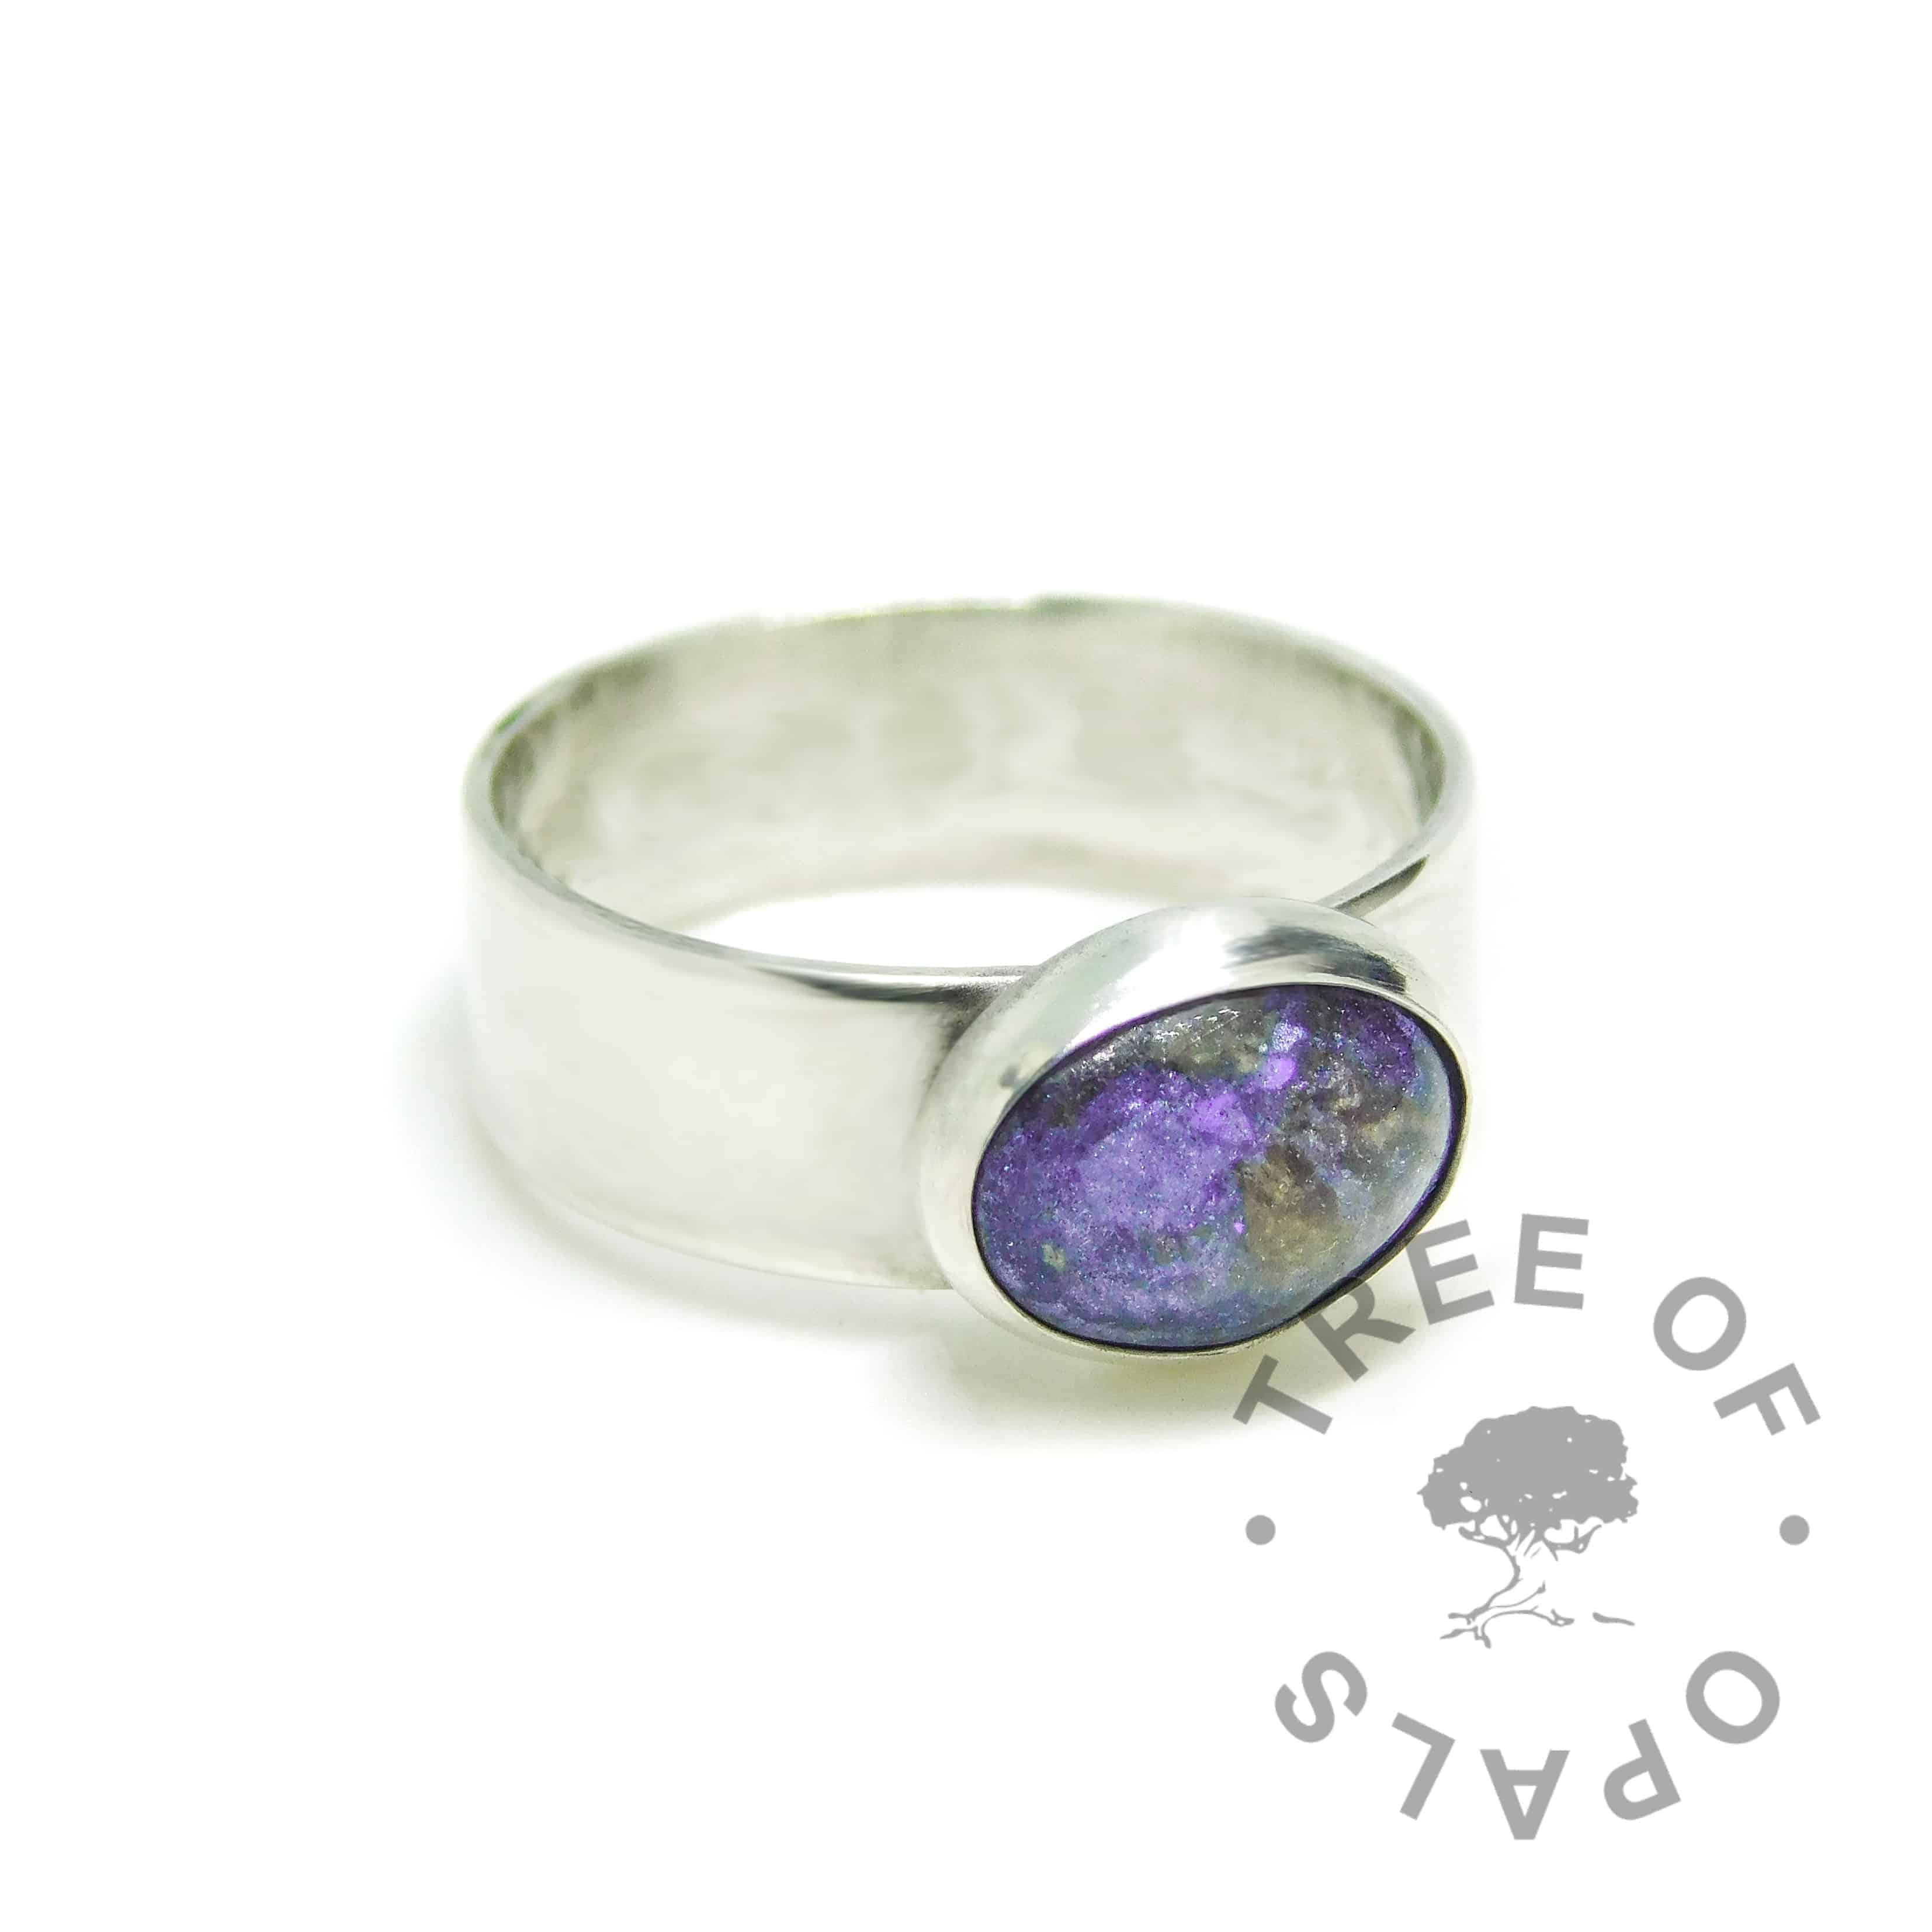 orchid purple placenta ring mockup on 6mm shiny band. Solid 925 sterling EcoSilver handmade ring (umbilical cord ring mockup). 10x8mm bezel cup rubbed over the cabochon for security.